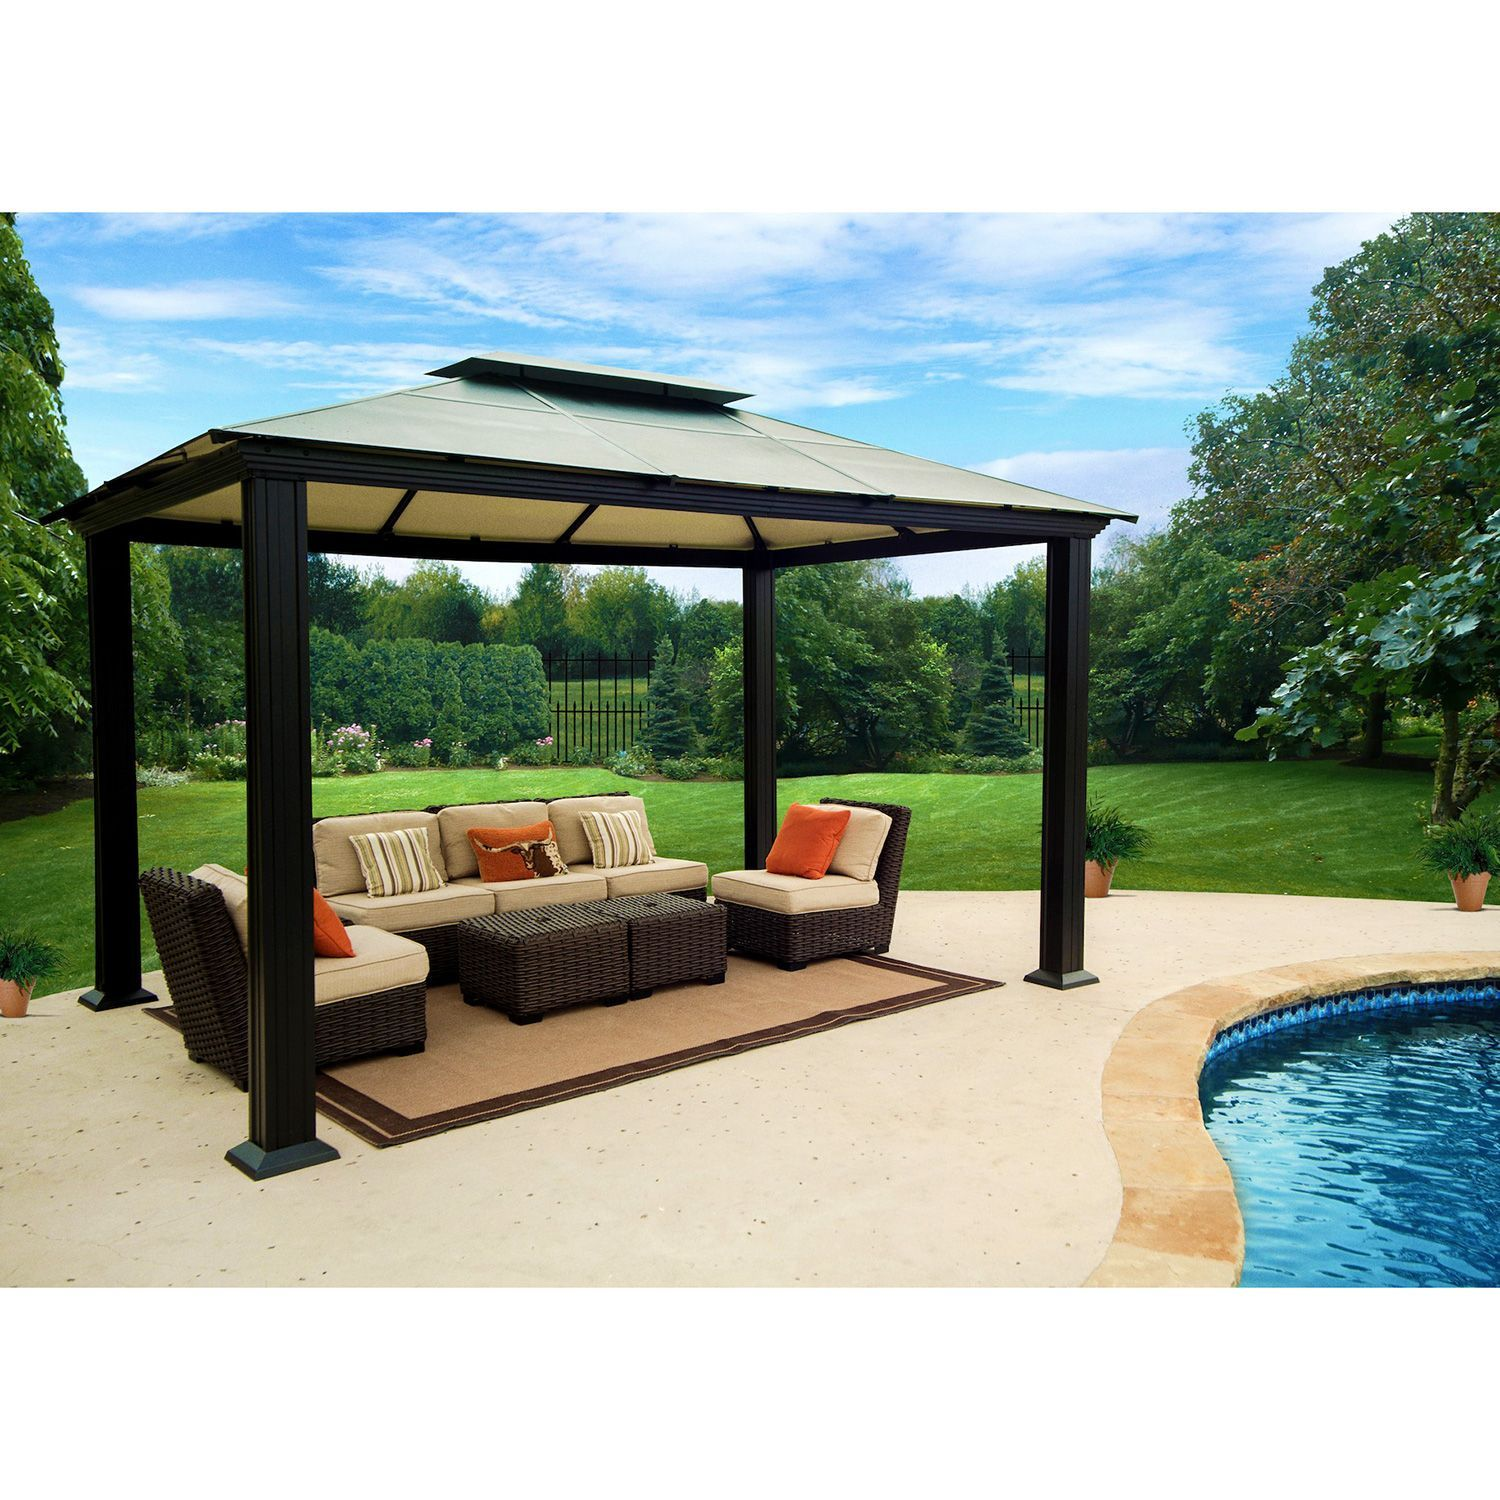 Southhampton Gazebo 10 X 13 Sam S Club Outdoor Living Space Design Aluminum Gazebo Pergola